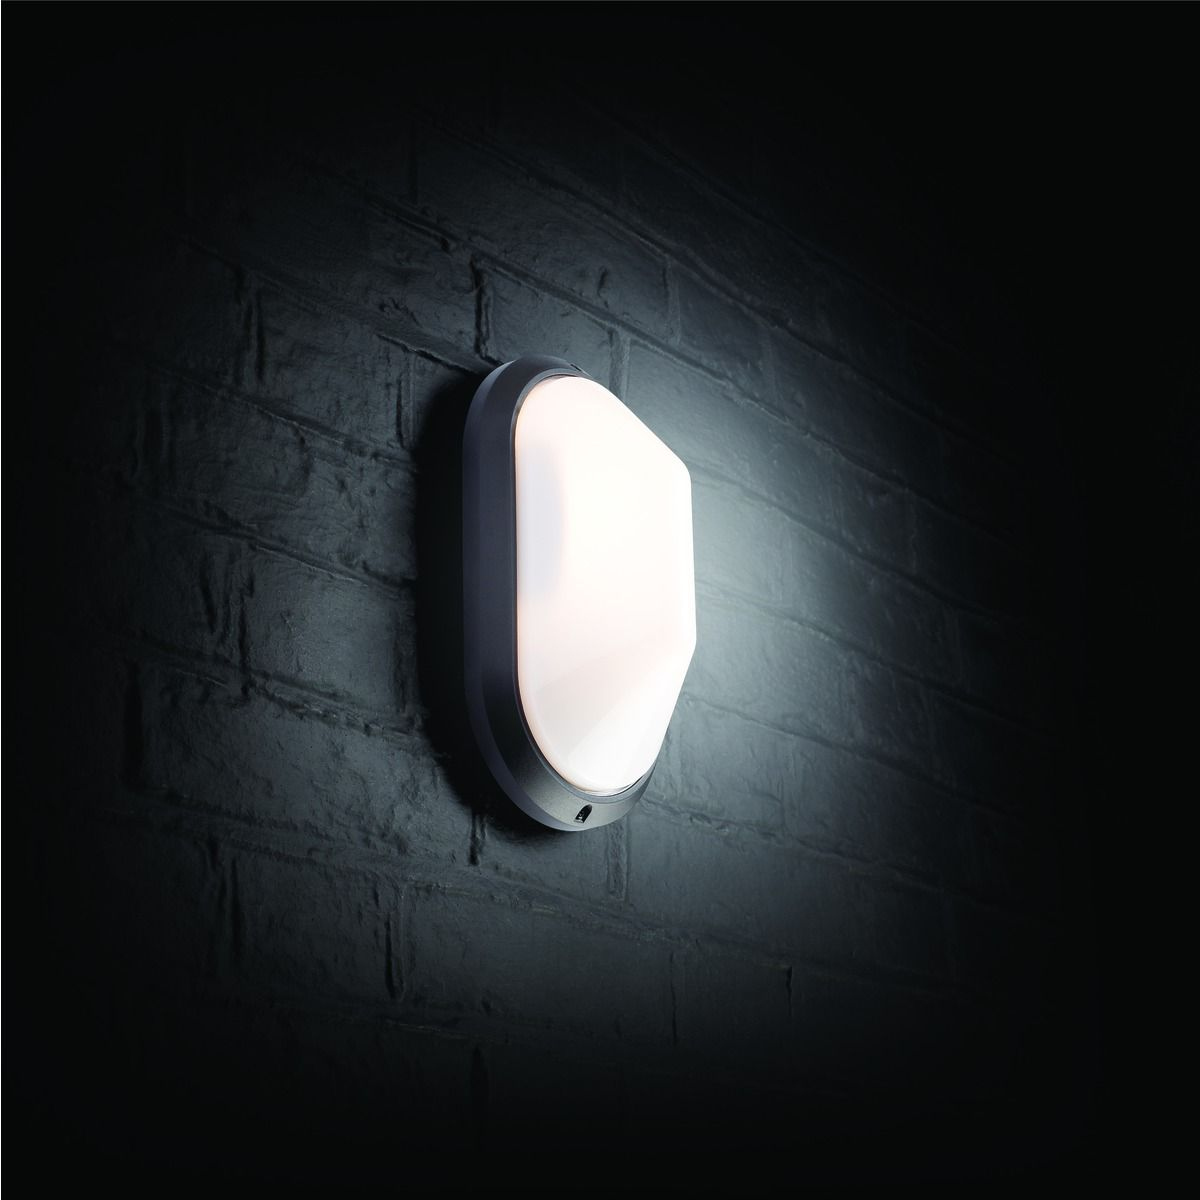 Outside Wall Lights Wickes : Wickes 60W Oval Bulkhead Black Wickes.co.uk